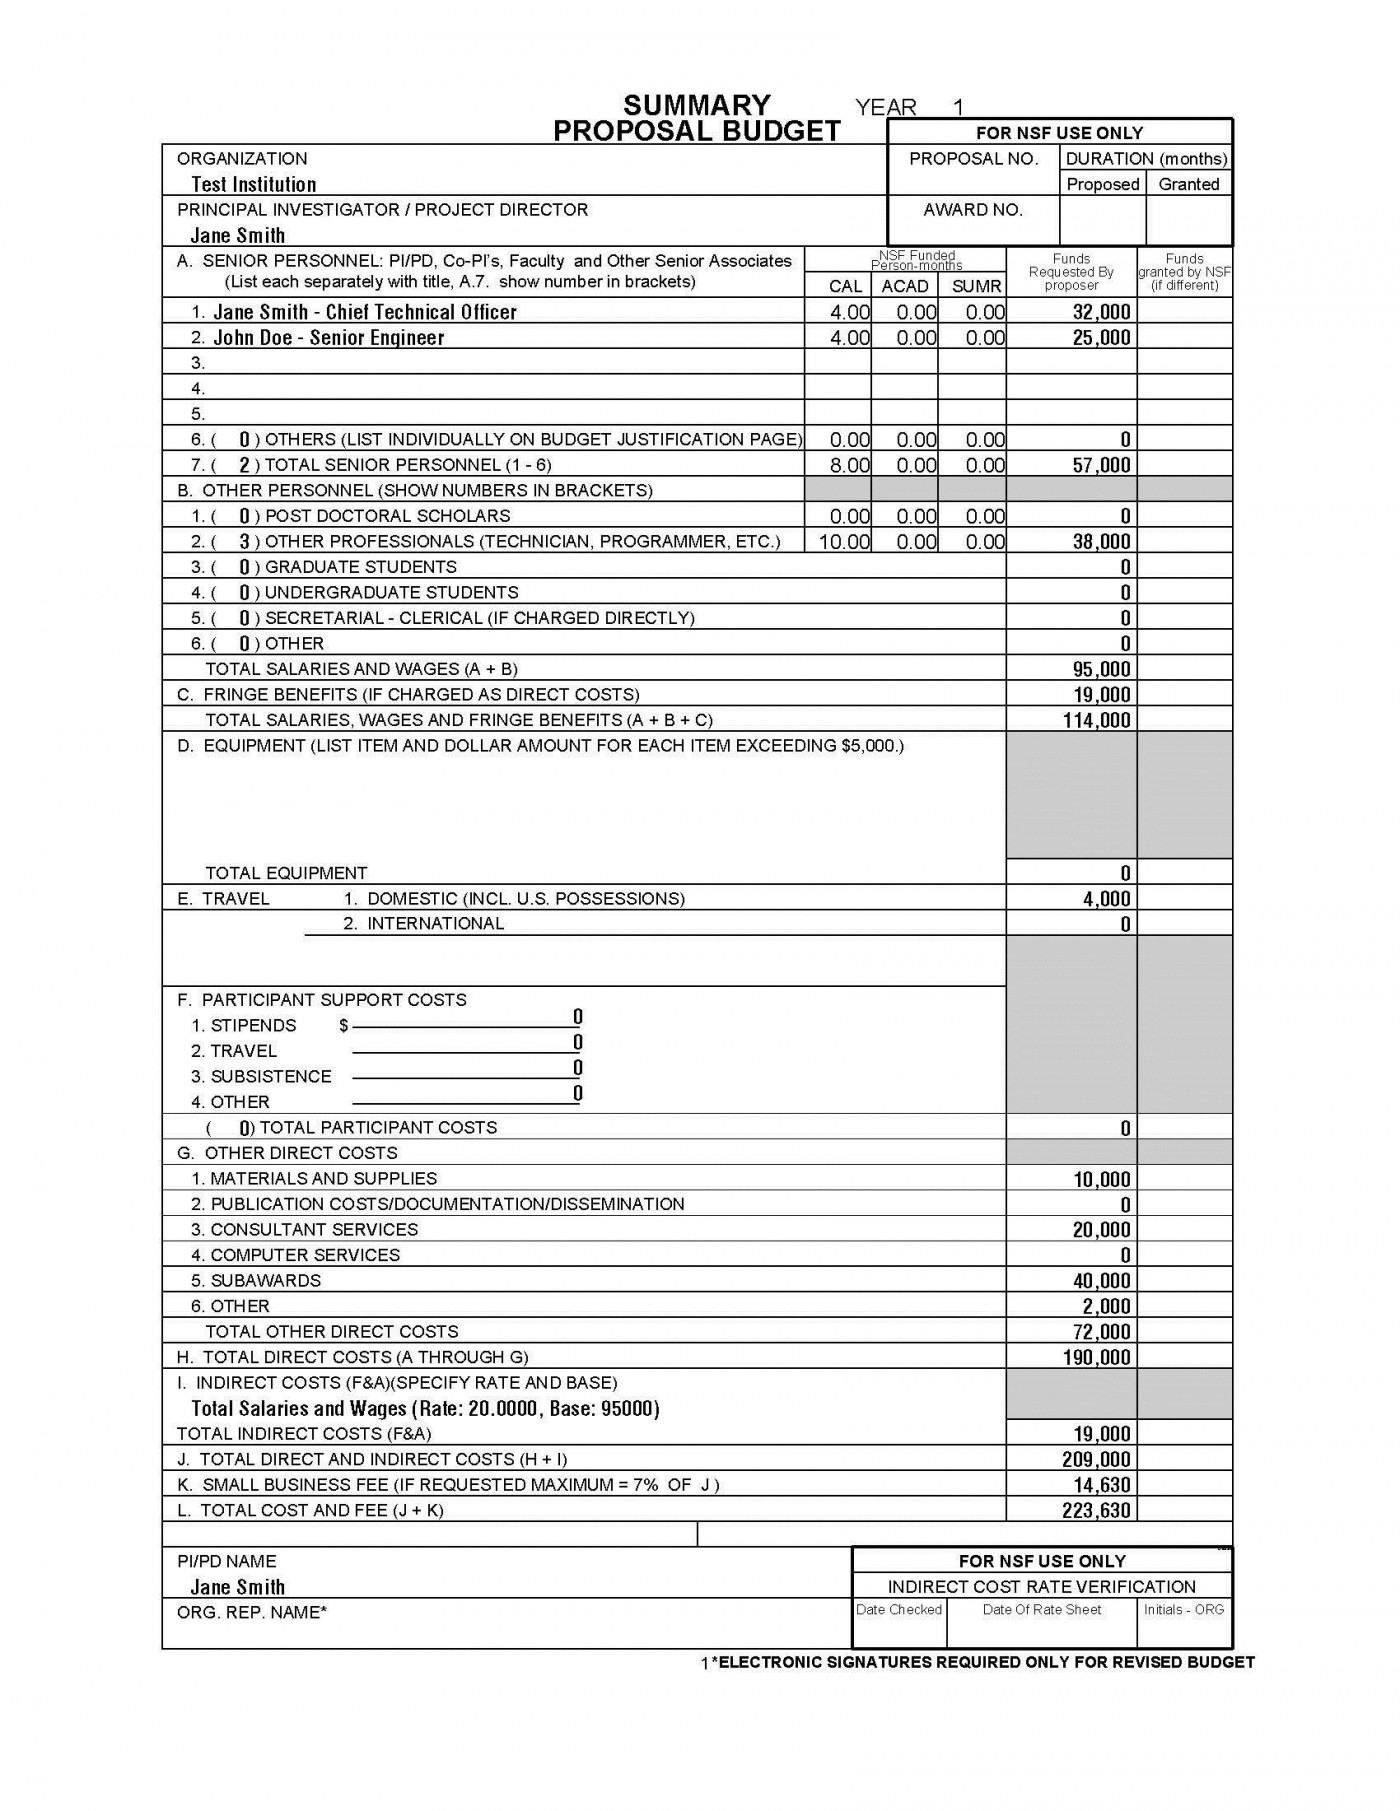 002 Breathtaking Line Item Budget Sample High Definition  Church For Grant Proposal Format1400